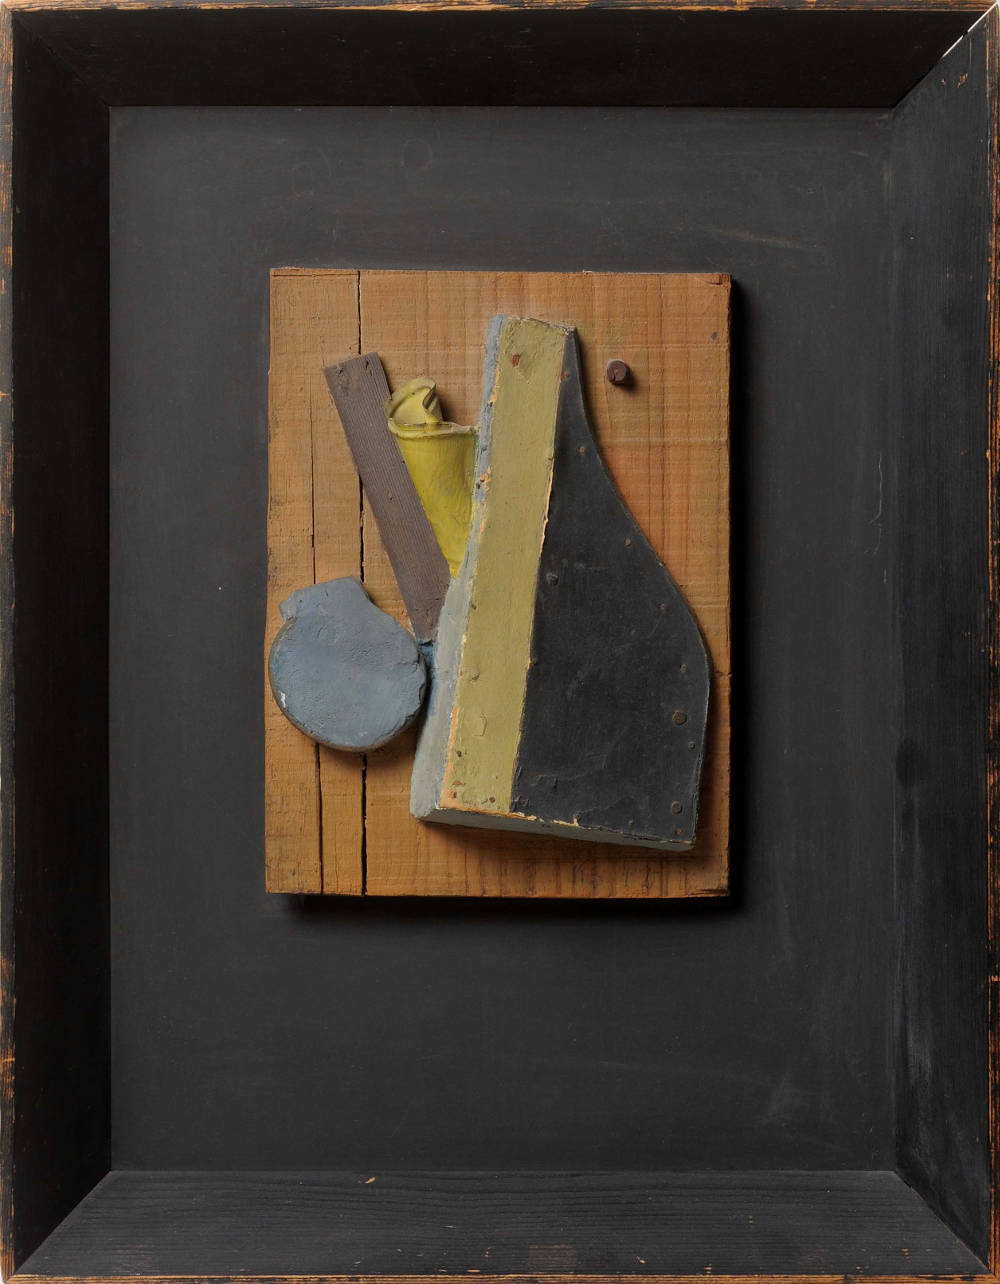 Kurt Schwitters, Sans Titre (Merzrelief, Blau, Beige), 1942. Relief, oil painting, wood, plaster and metal sheet on a wooden panel 24.7 x 18.5 cm | 49.8 x 38.5 x 6.5 cm (framed). Courtesy Galerie Natalie Seroussi & Galerie Zlotowski